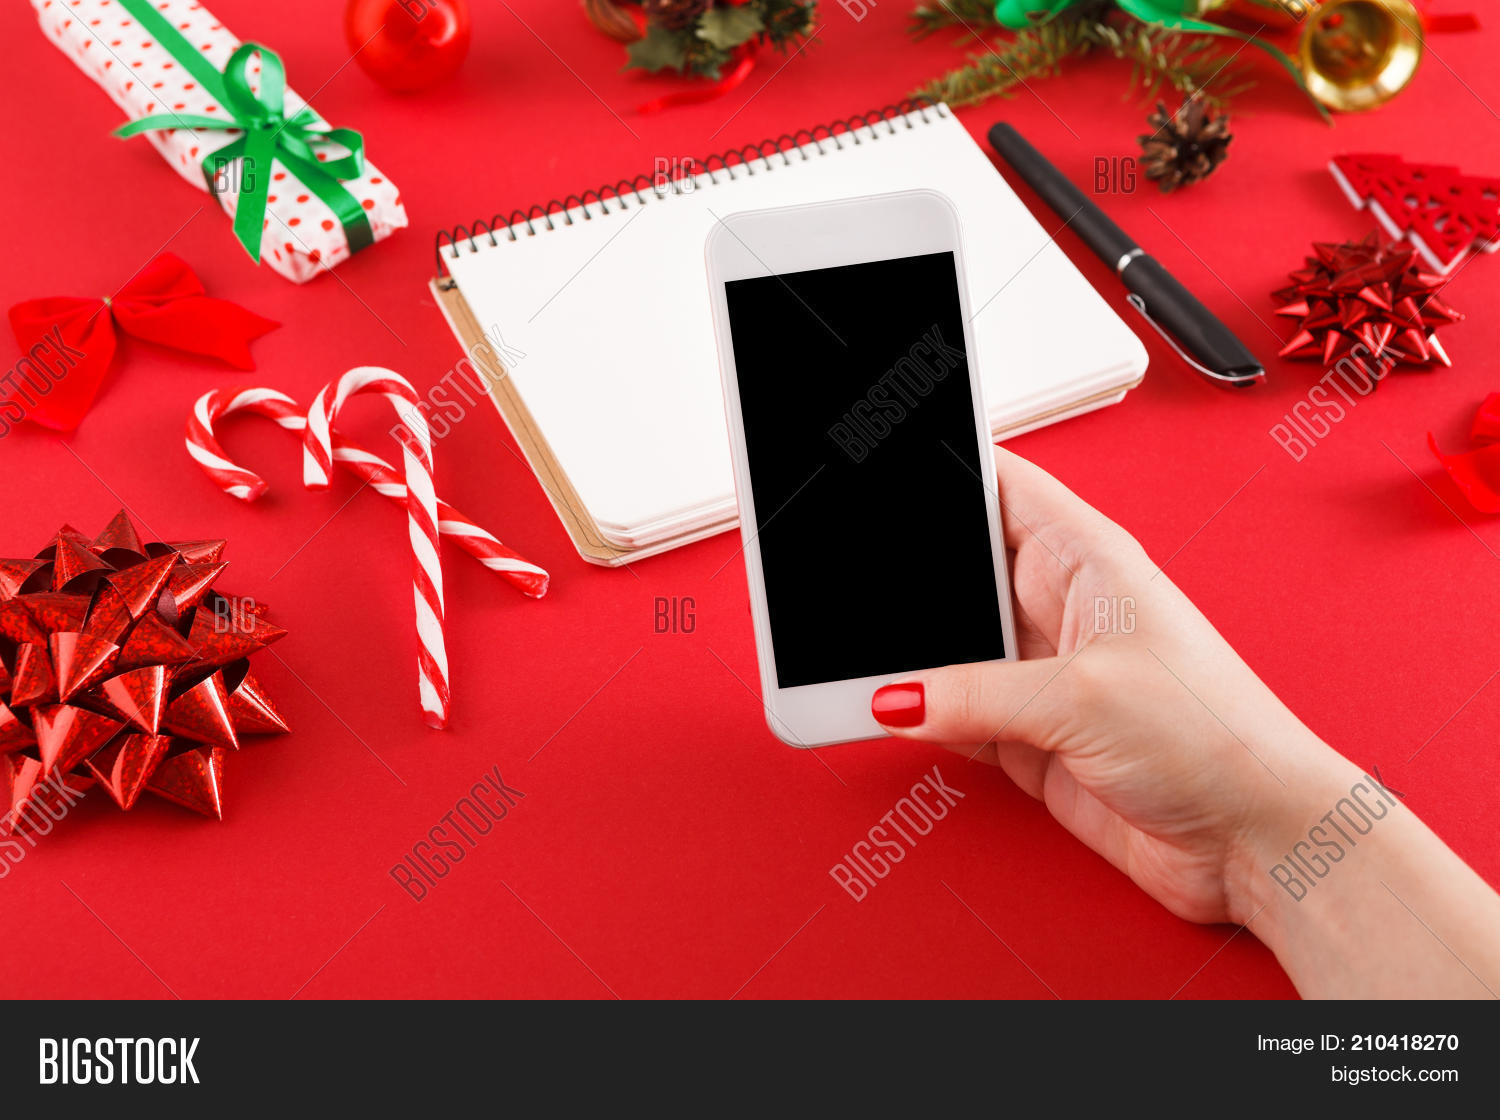 Christmas Online Image & Photo (Free Trial) | Bigstock